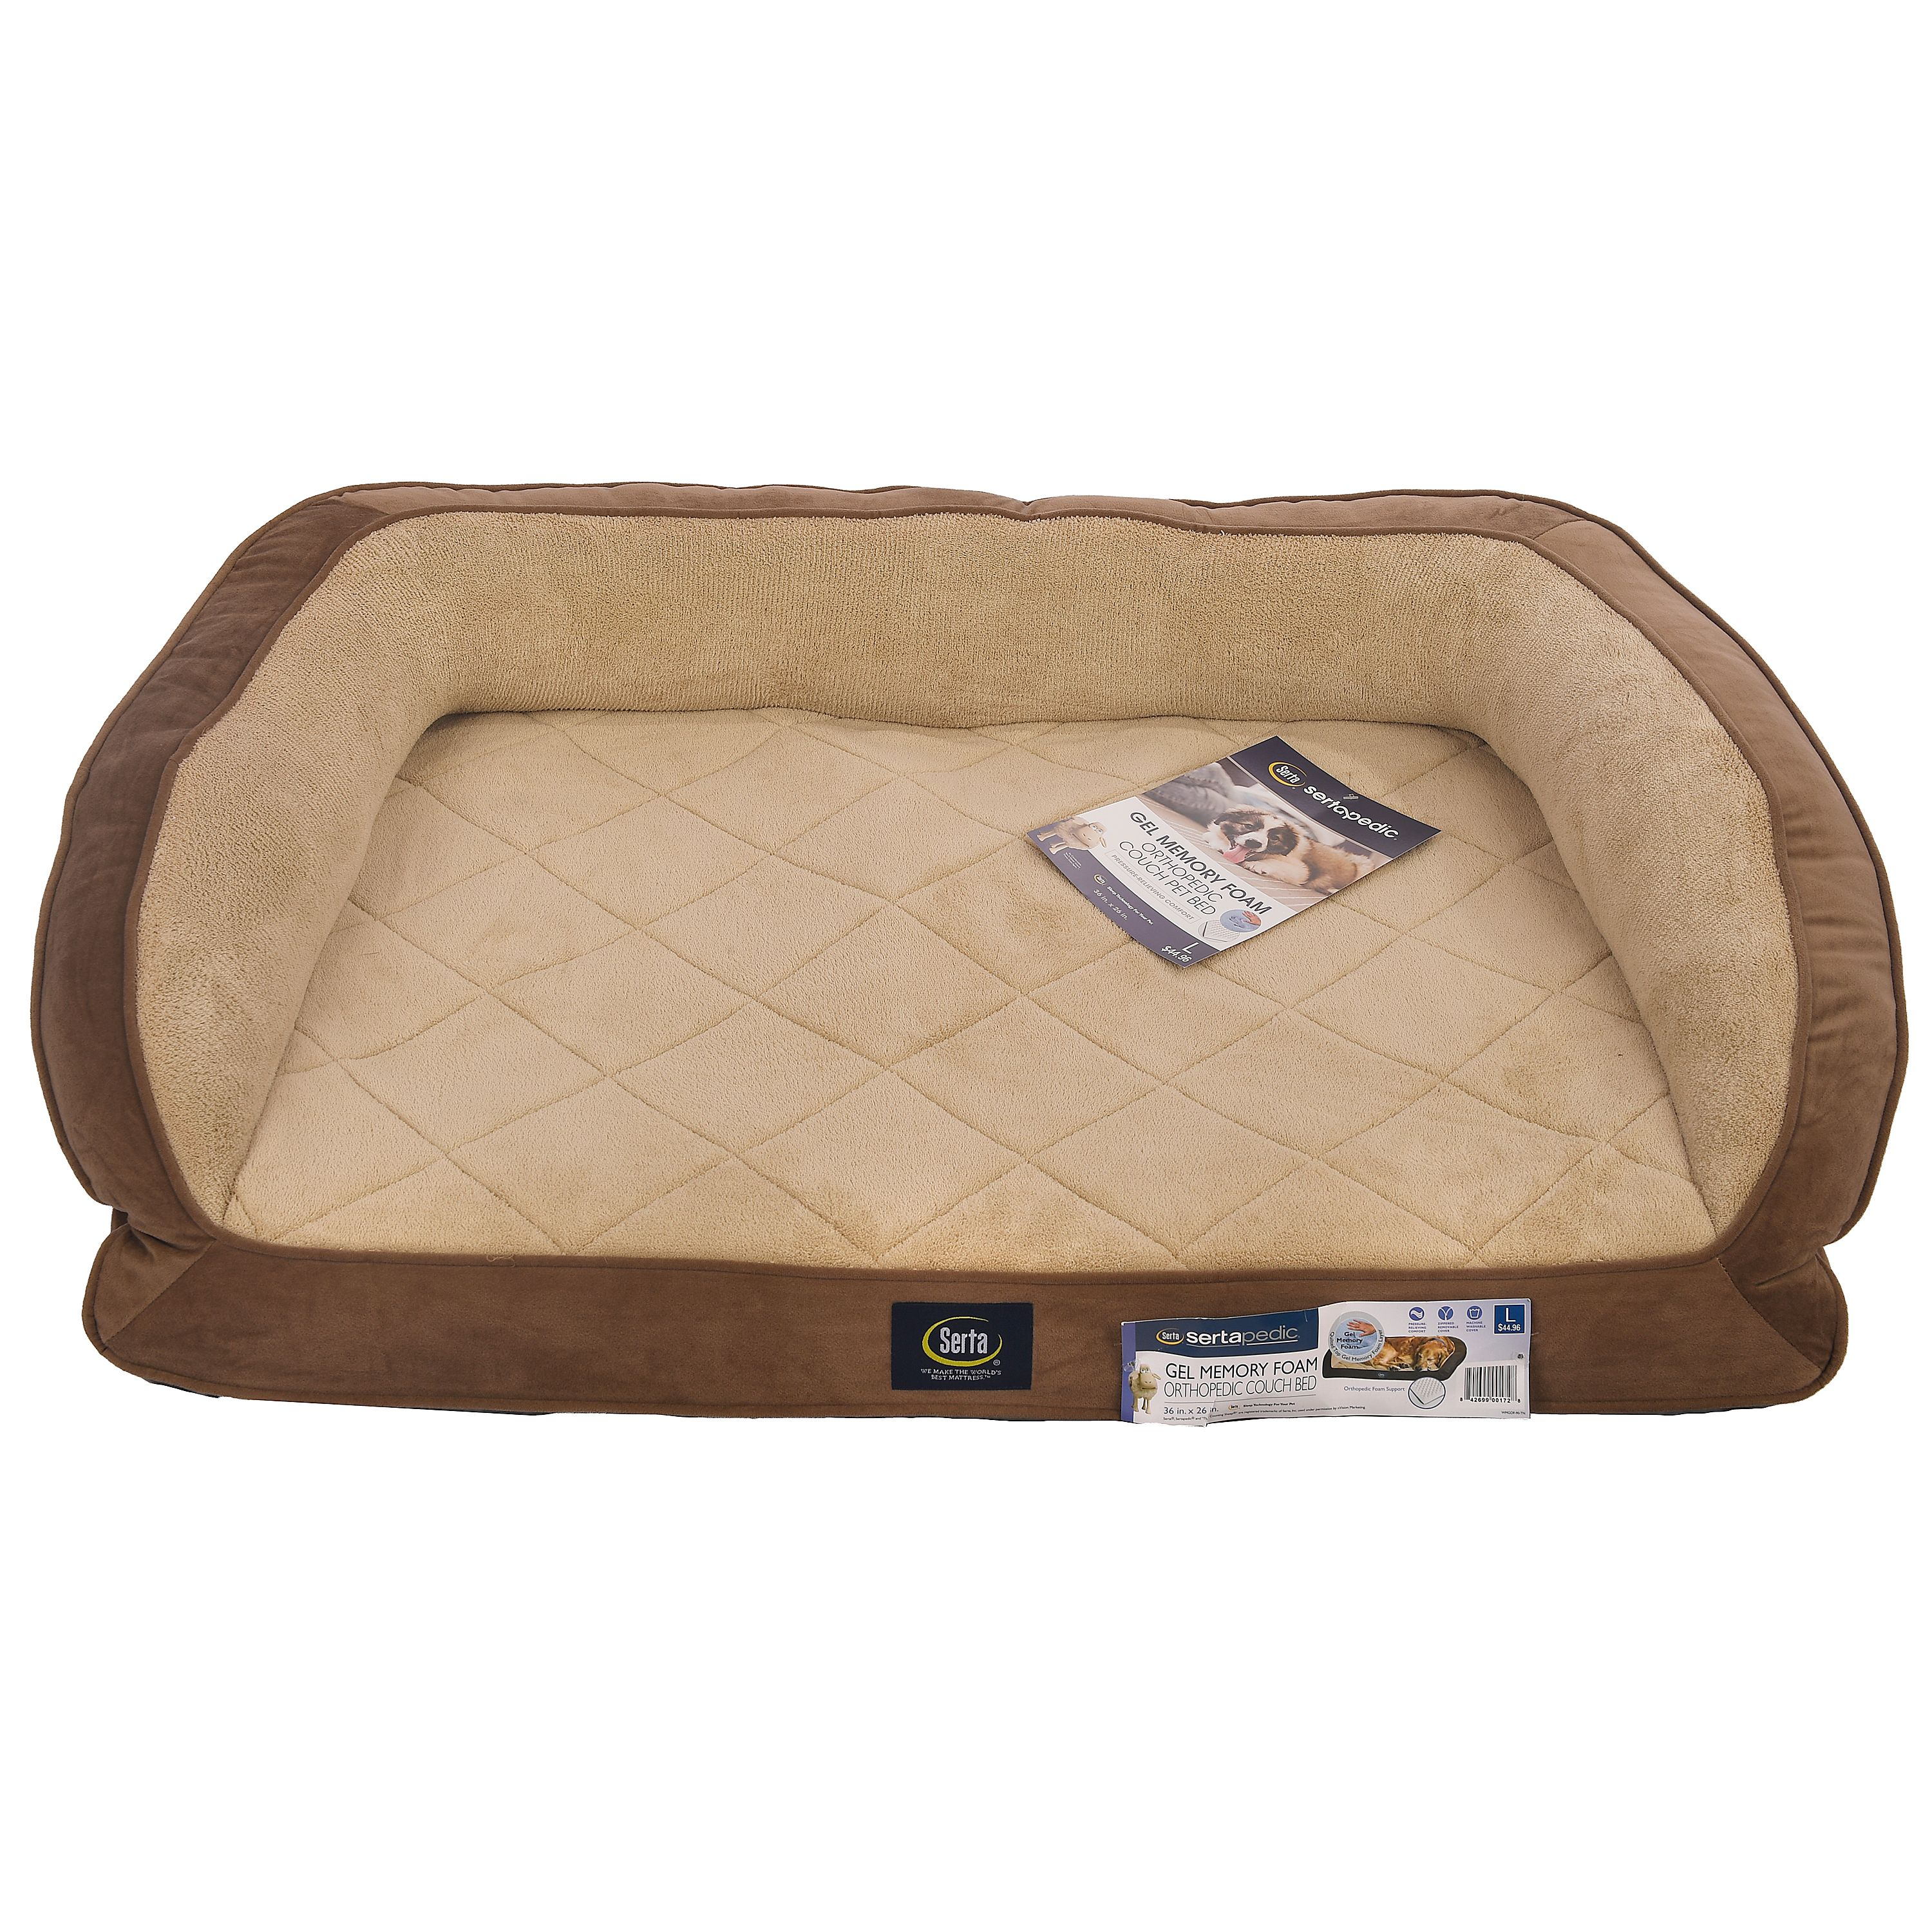 pet beds supplies dog product rest bed overstock free simmons colossal shipping today foam beautyrest orthopedic memory